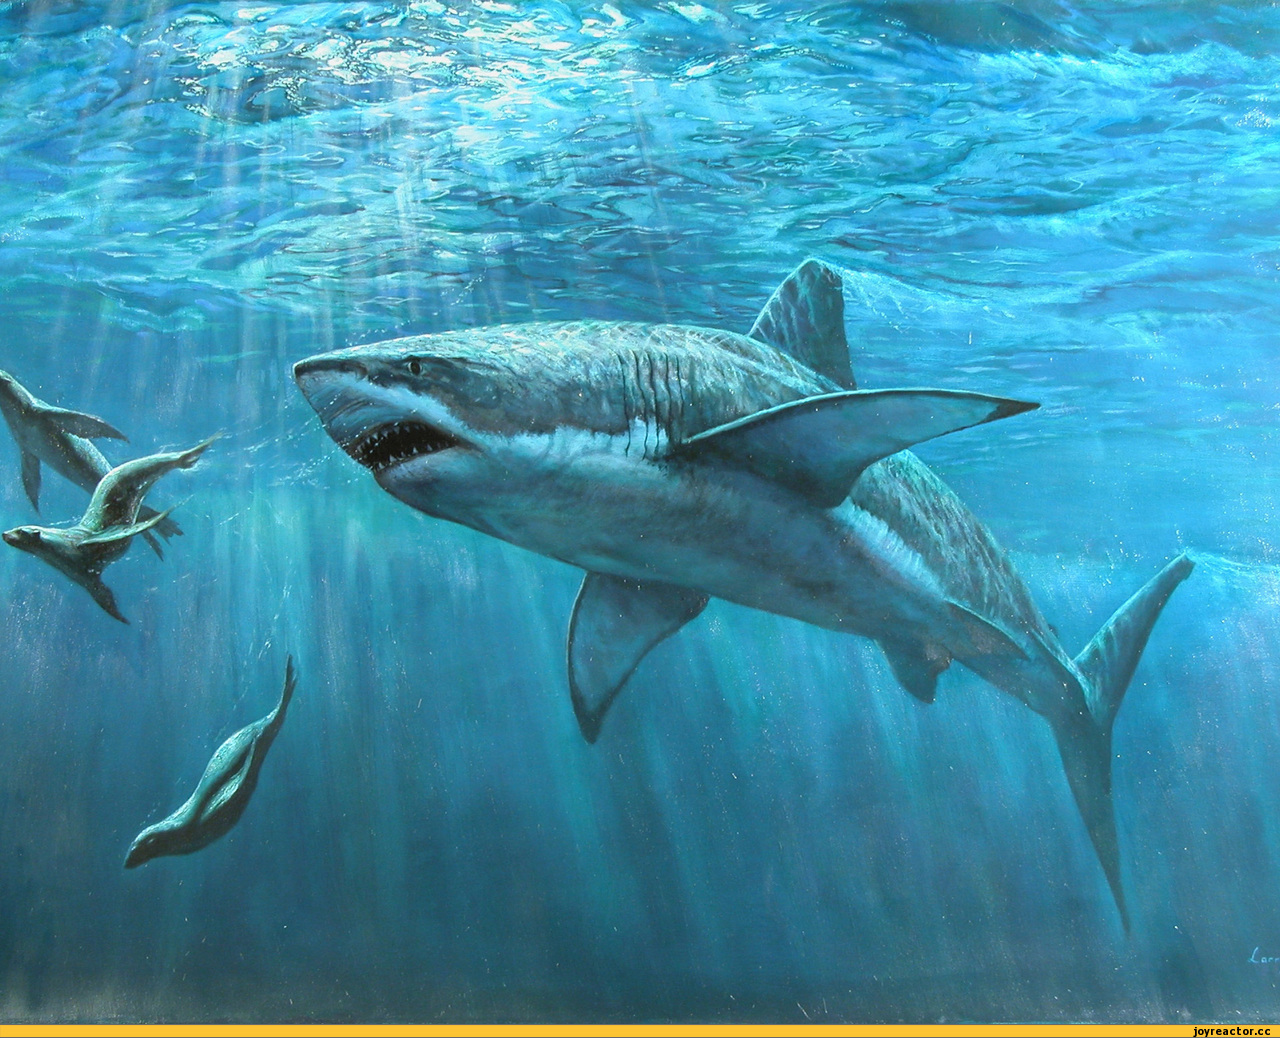 16520 download wallpaper Animals, Sea, Sharks, Fishes screensavers and pictures for free